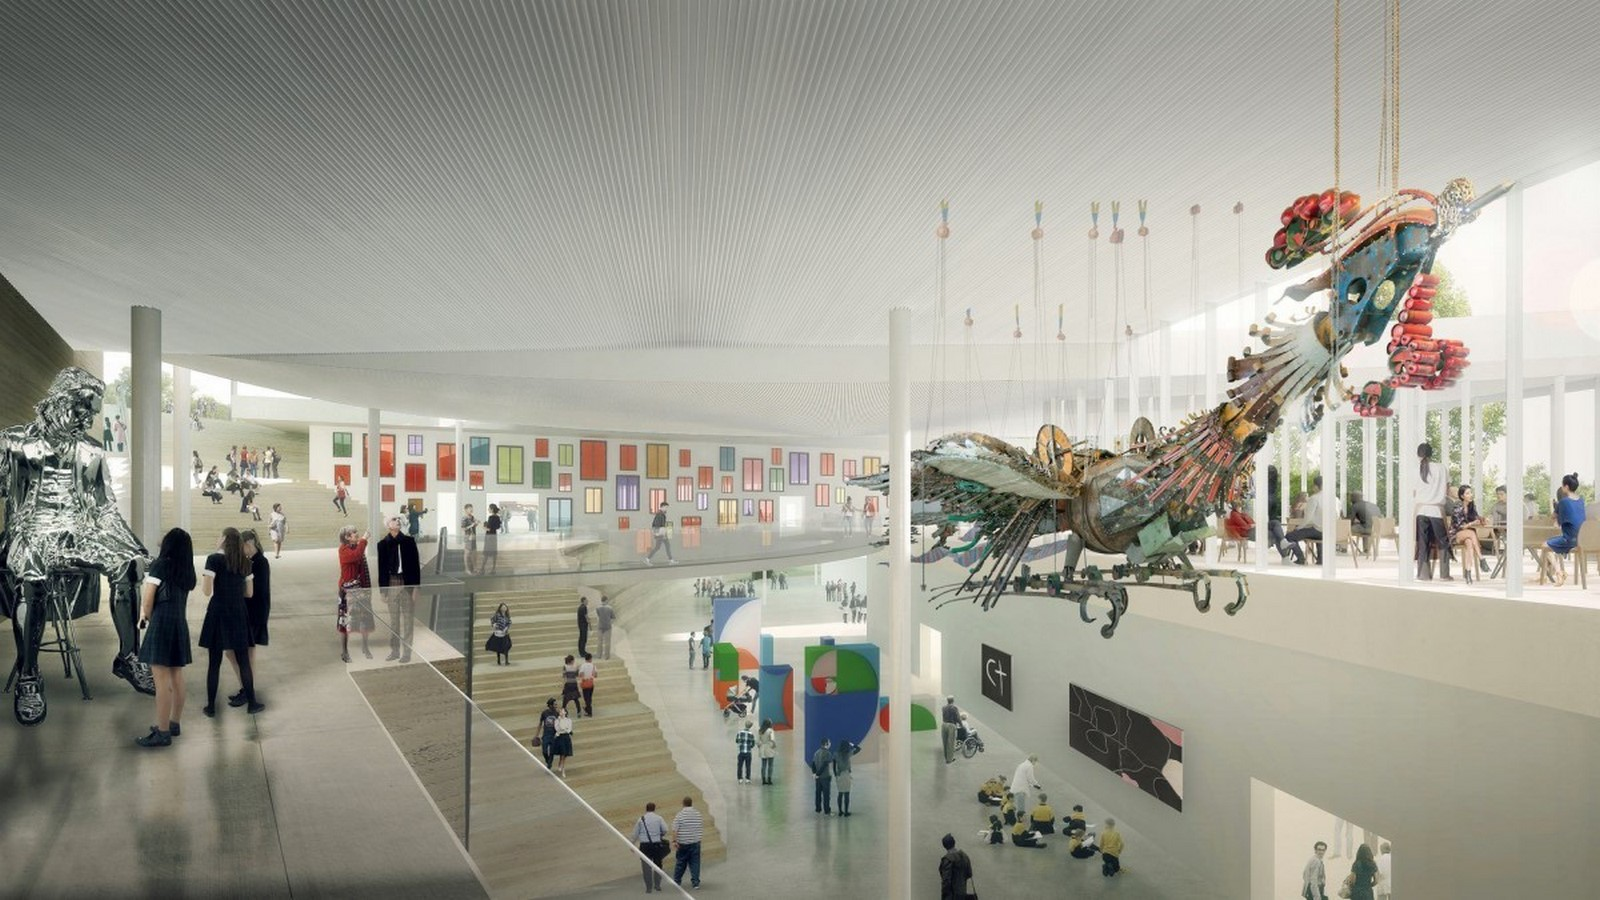 New Images For Art Gallery Of South Wales Expansion In Sydney revealed by SANAA - Sheet9